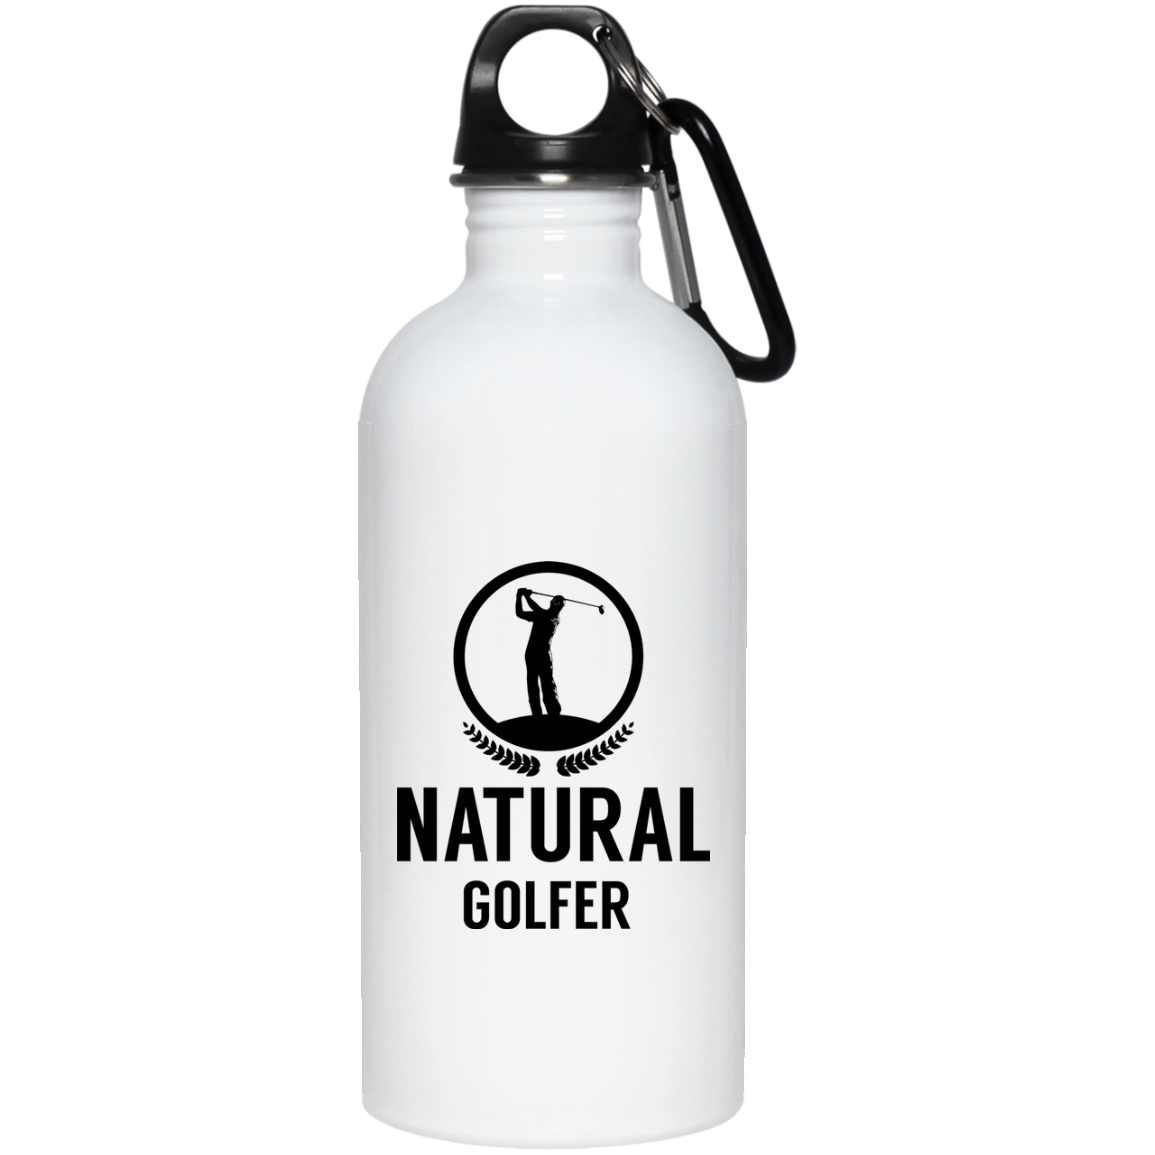 20 oz. Stainless Steel Water Bottle- Natural Golfer